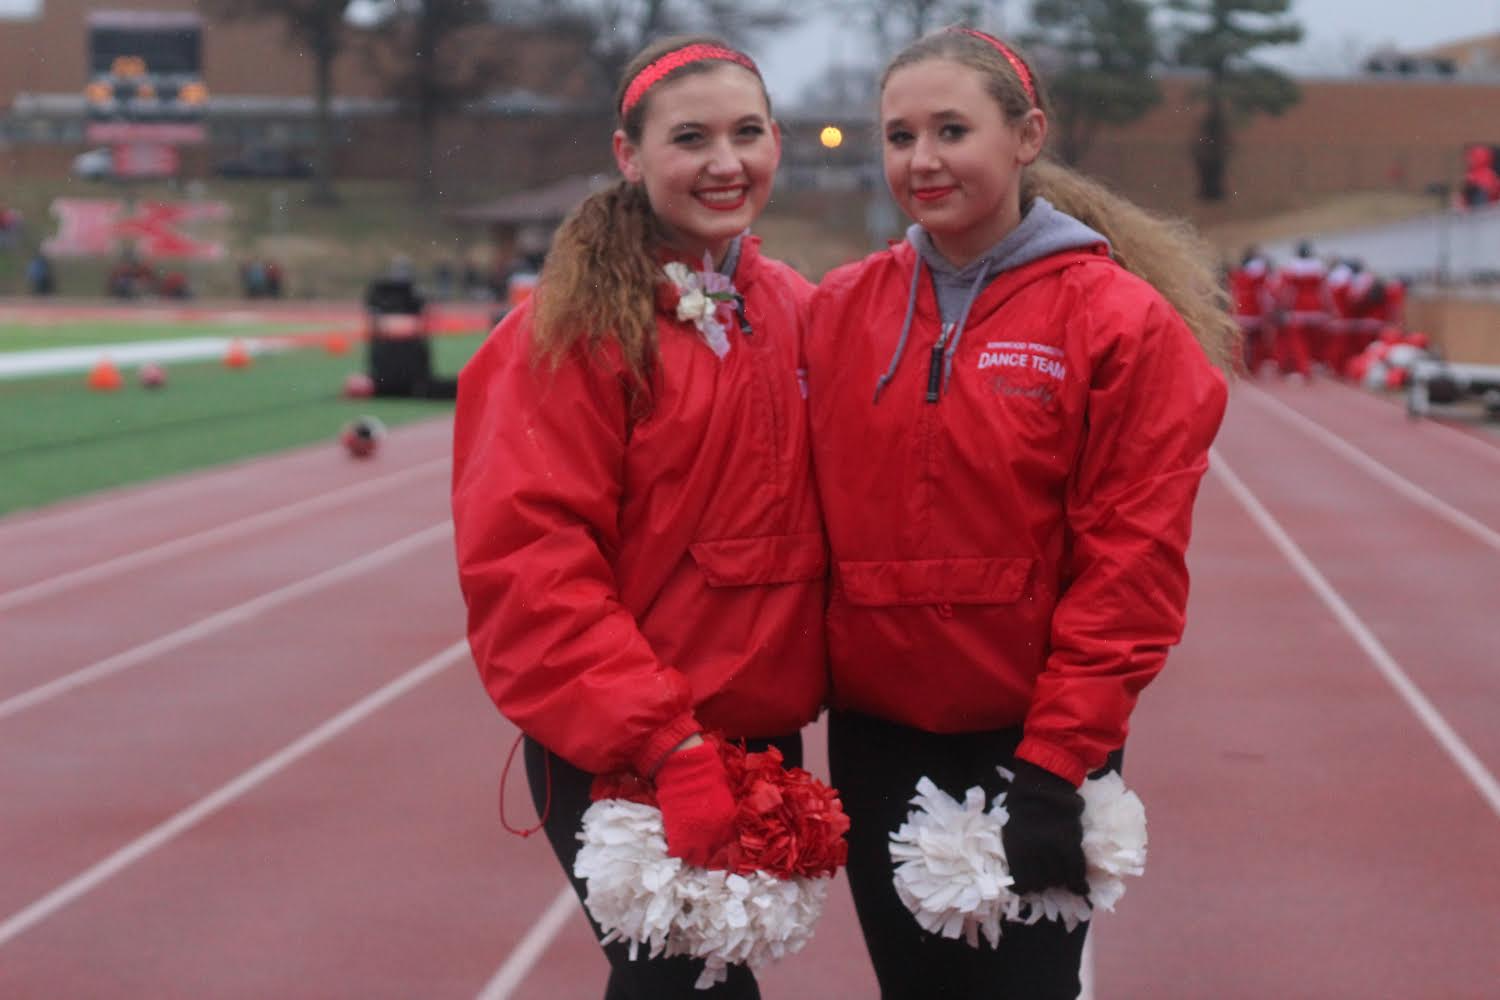 Isabella Knopfel, sophomore, and Olivia Knopfel, senior, pose after the Turkey Day game.